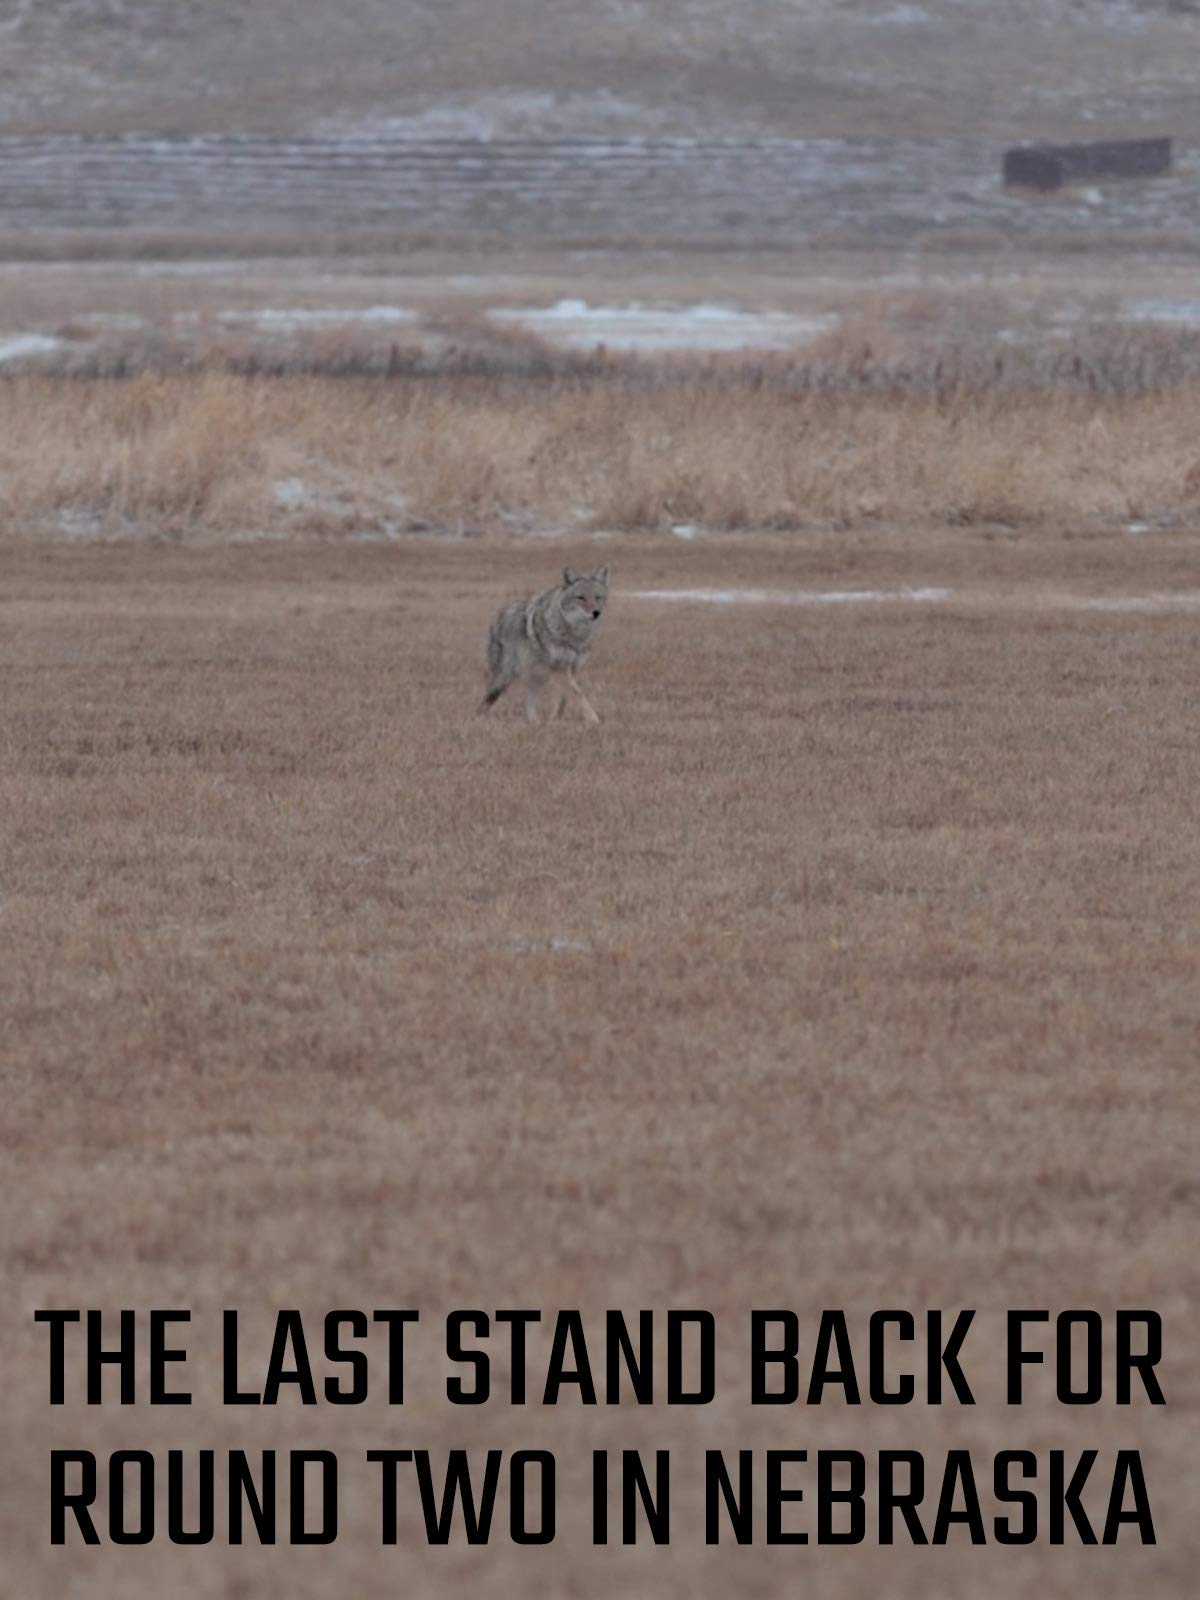 The Last Stand Back For Round Two In Nebraska